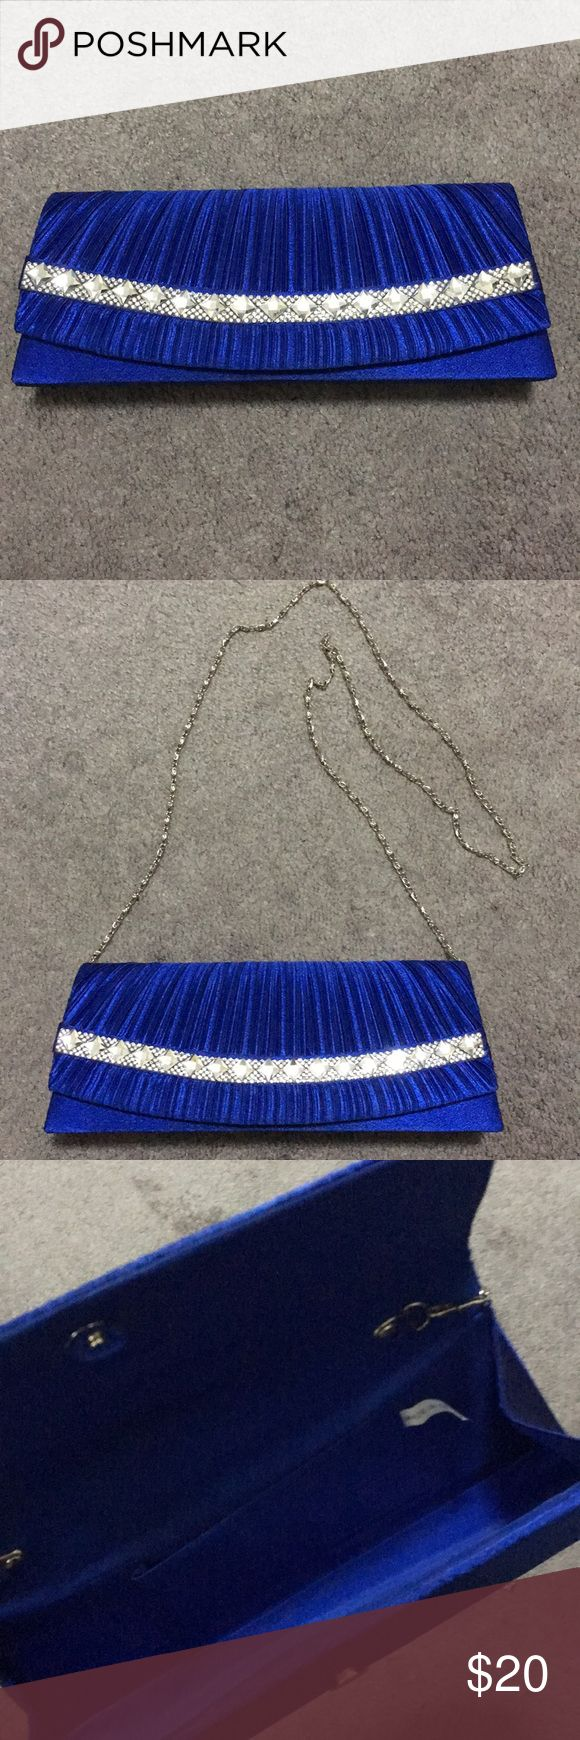 Royal Blue clutch bag This is a beautiful royal blue clutch bag with a shiny silver gem design across the front. Hold it in your hand or wear it on your shoulder. Add a little bling to your outfit! Bags Clutches & Wristlets